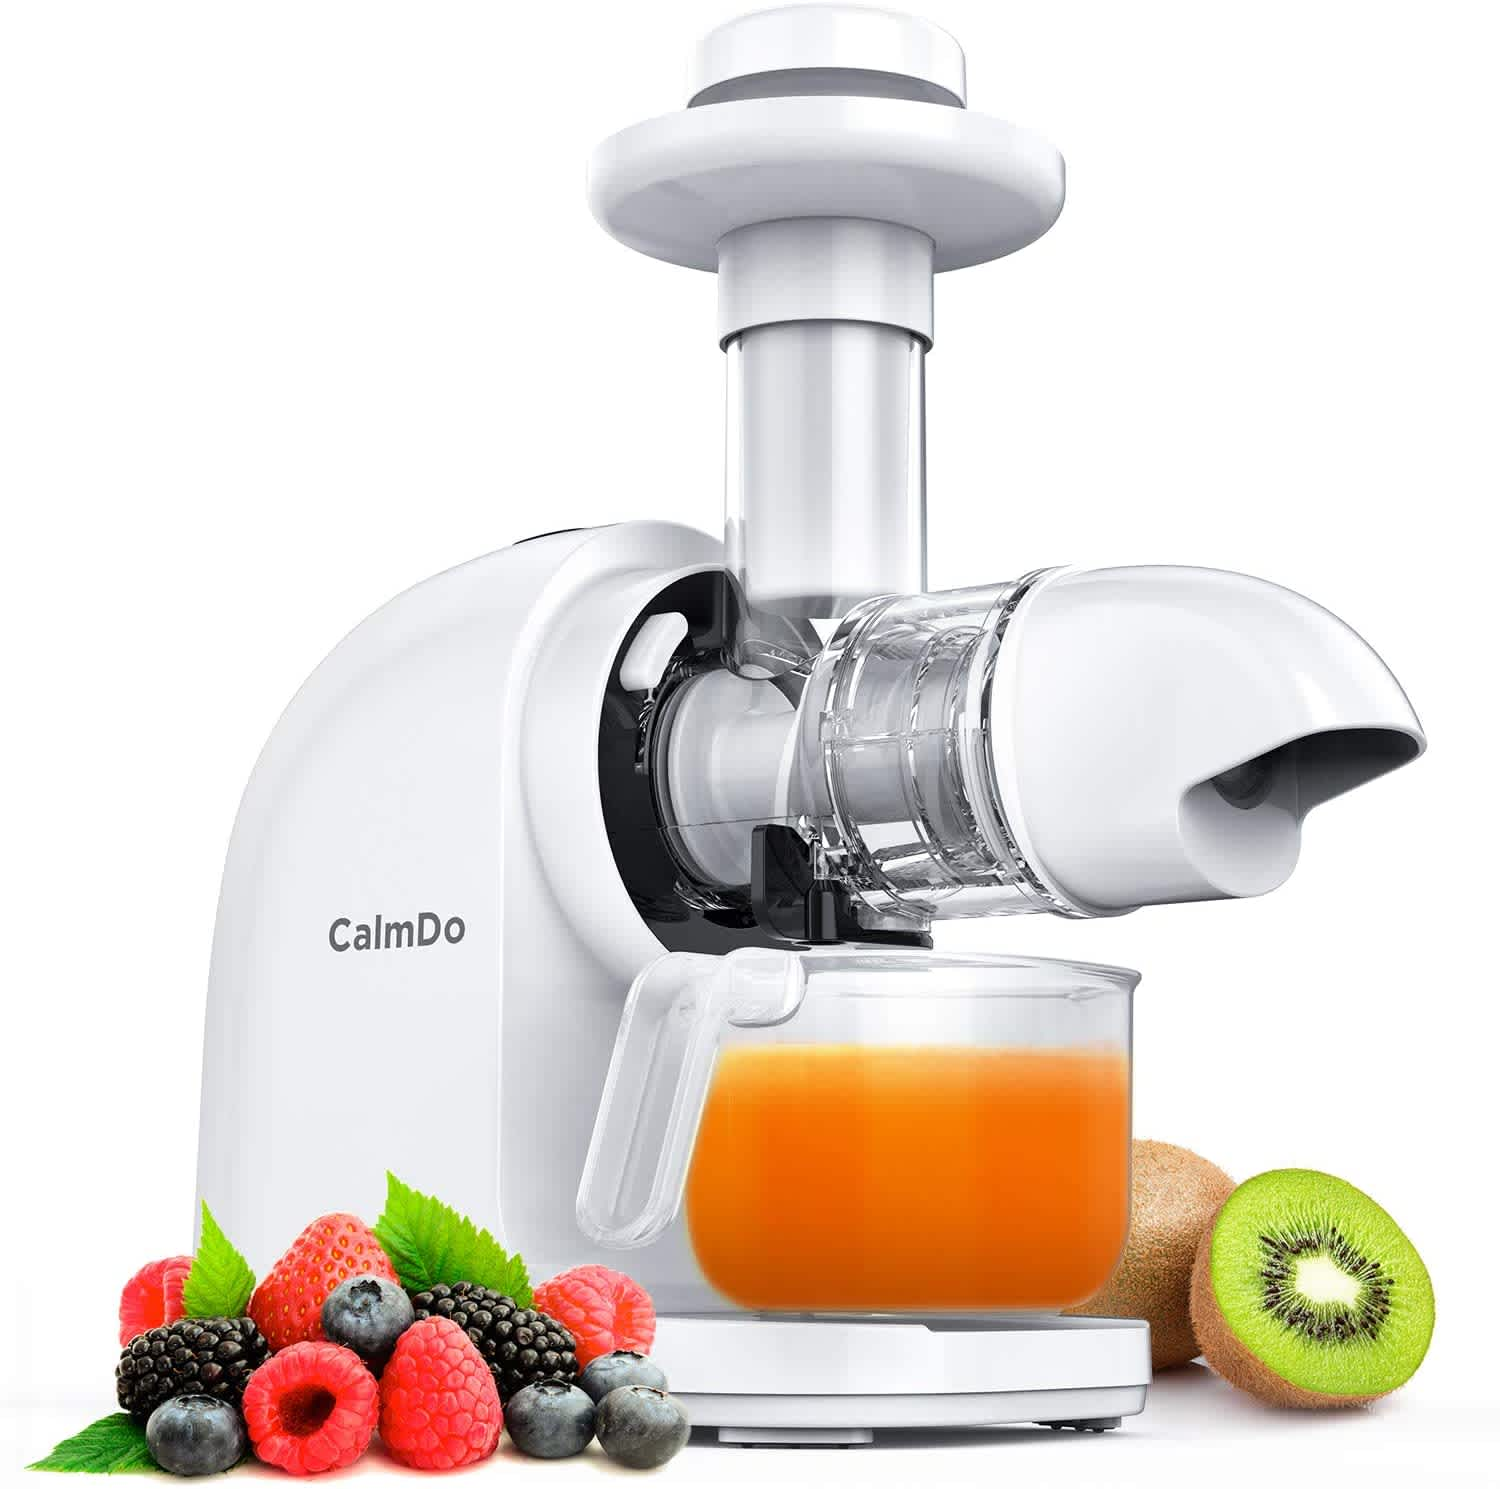 CalmDo Masticating Juicer